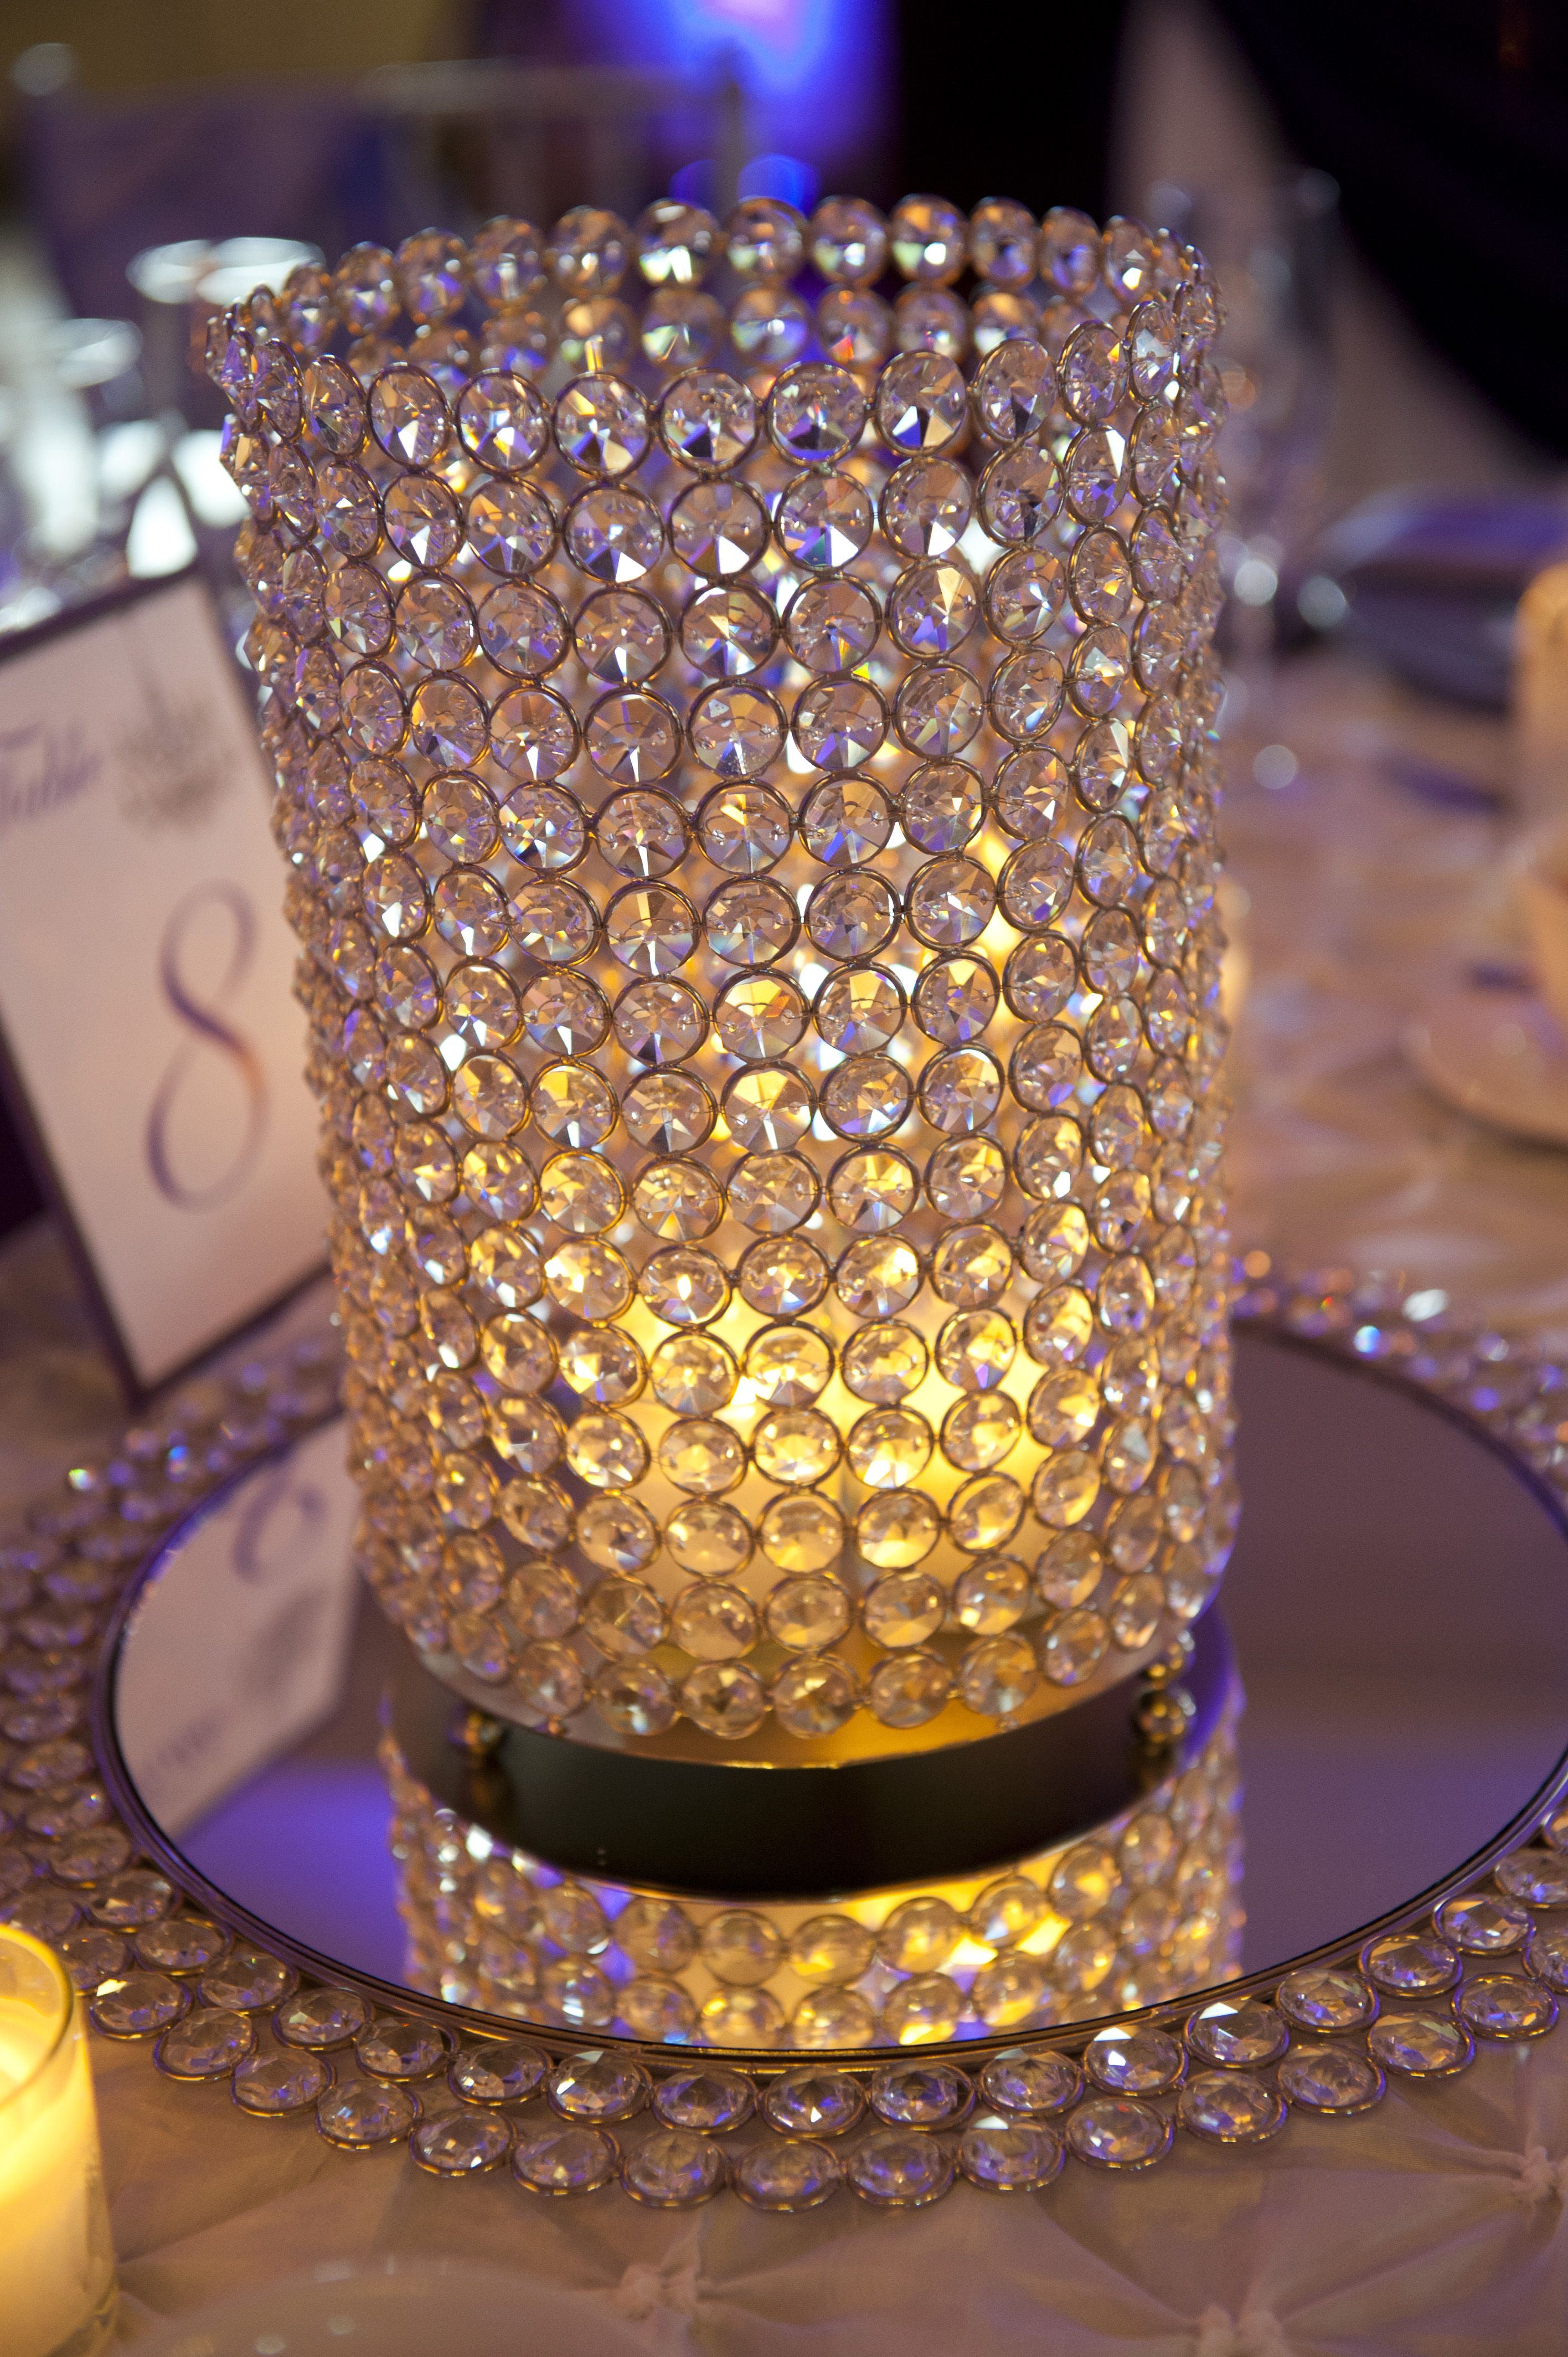 Wedding decorations yellow and gray  Bling votive wedding centerpiece I like the edging around the